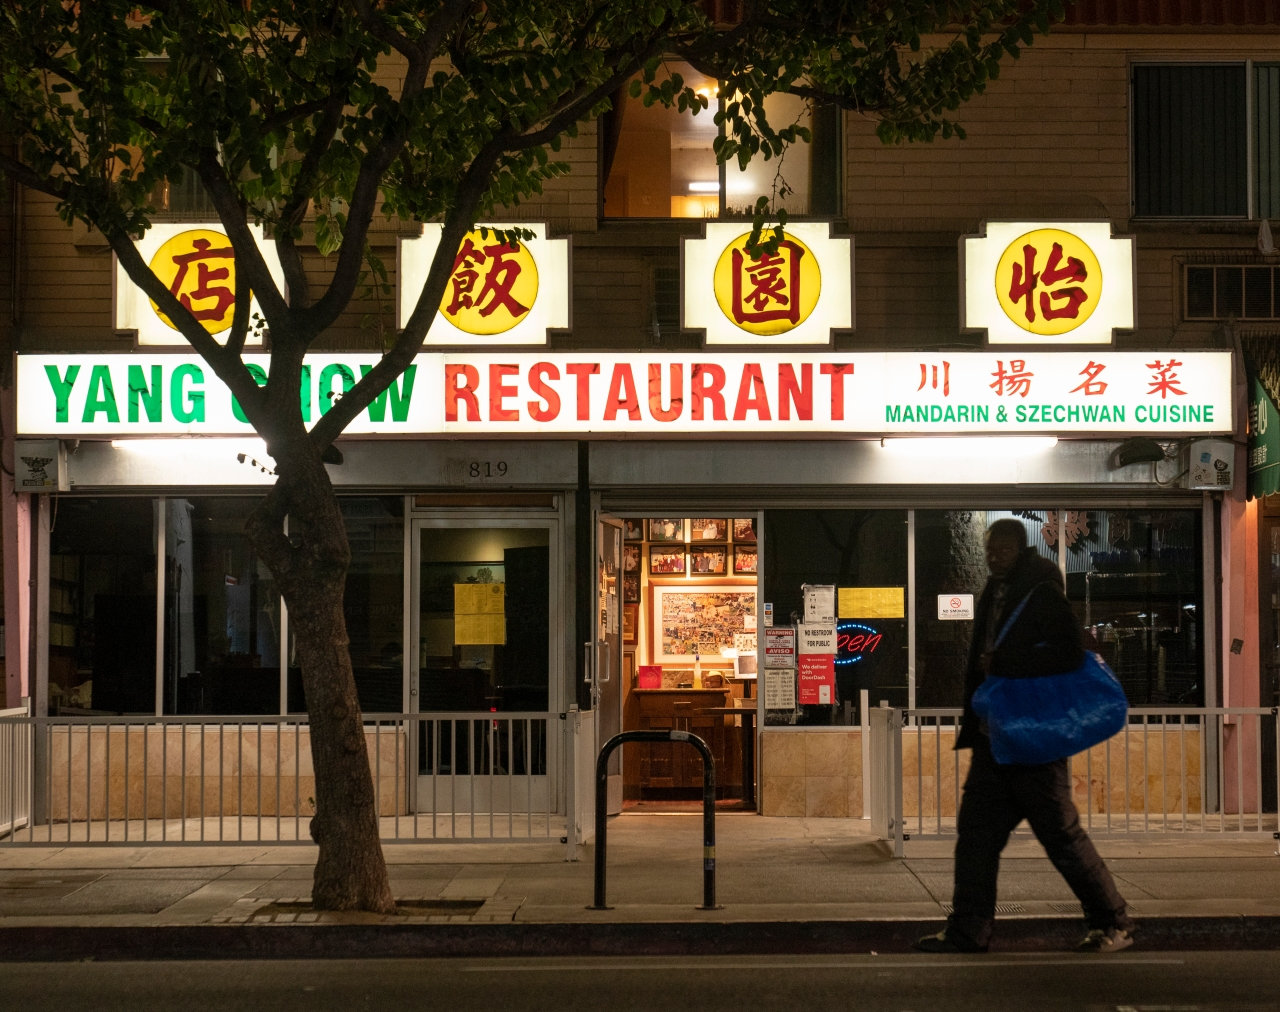 wgntv.com: Racism targets Asian food, business during COVID-19 pandemic